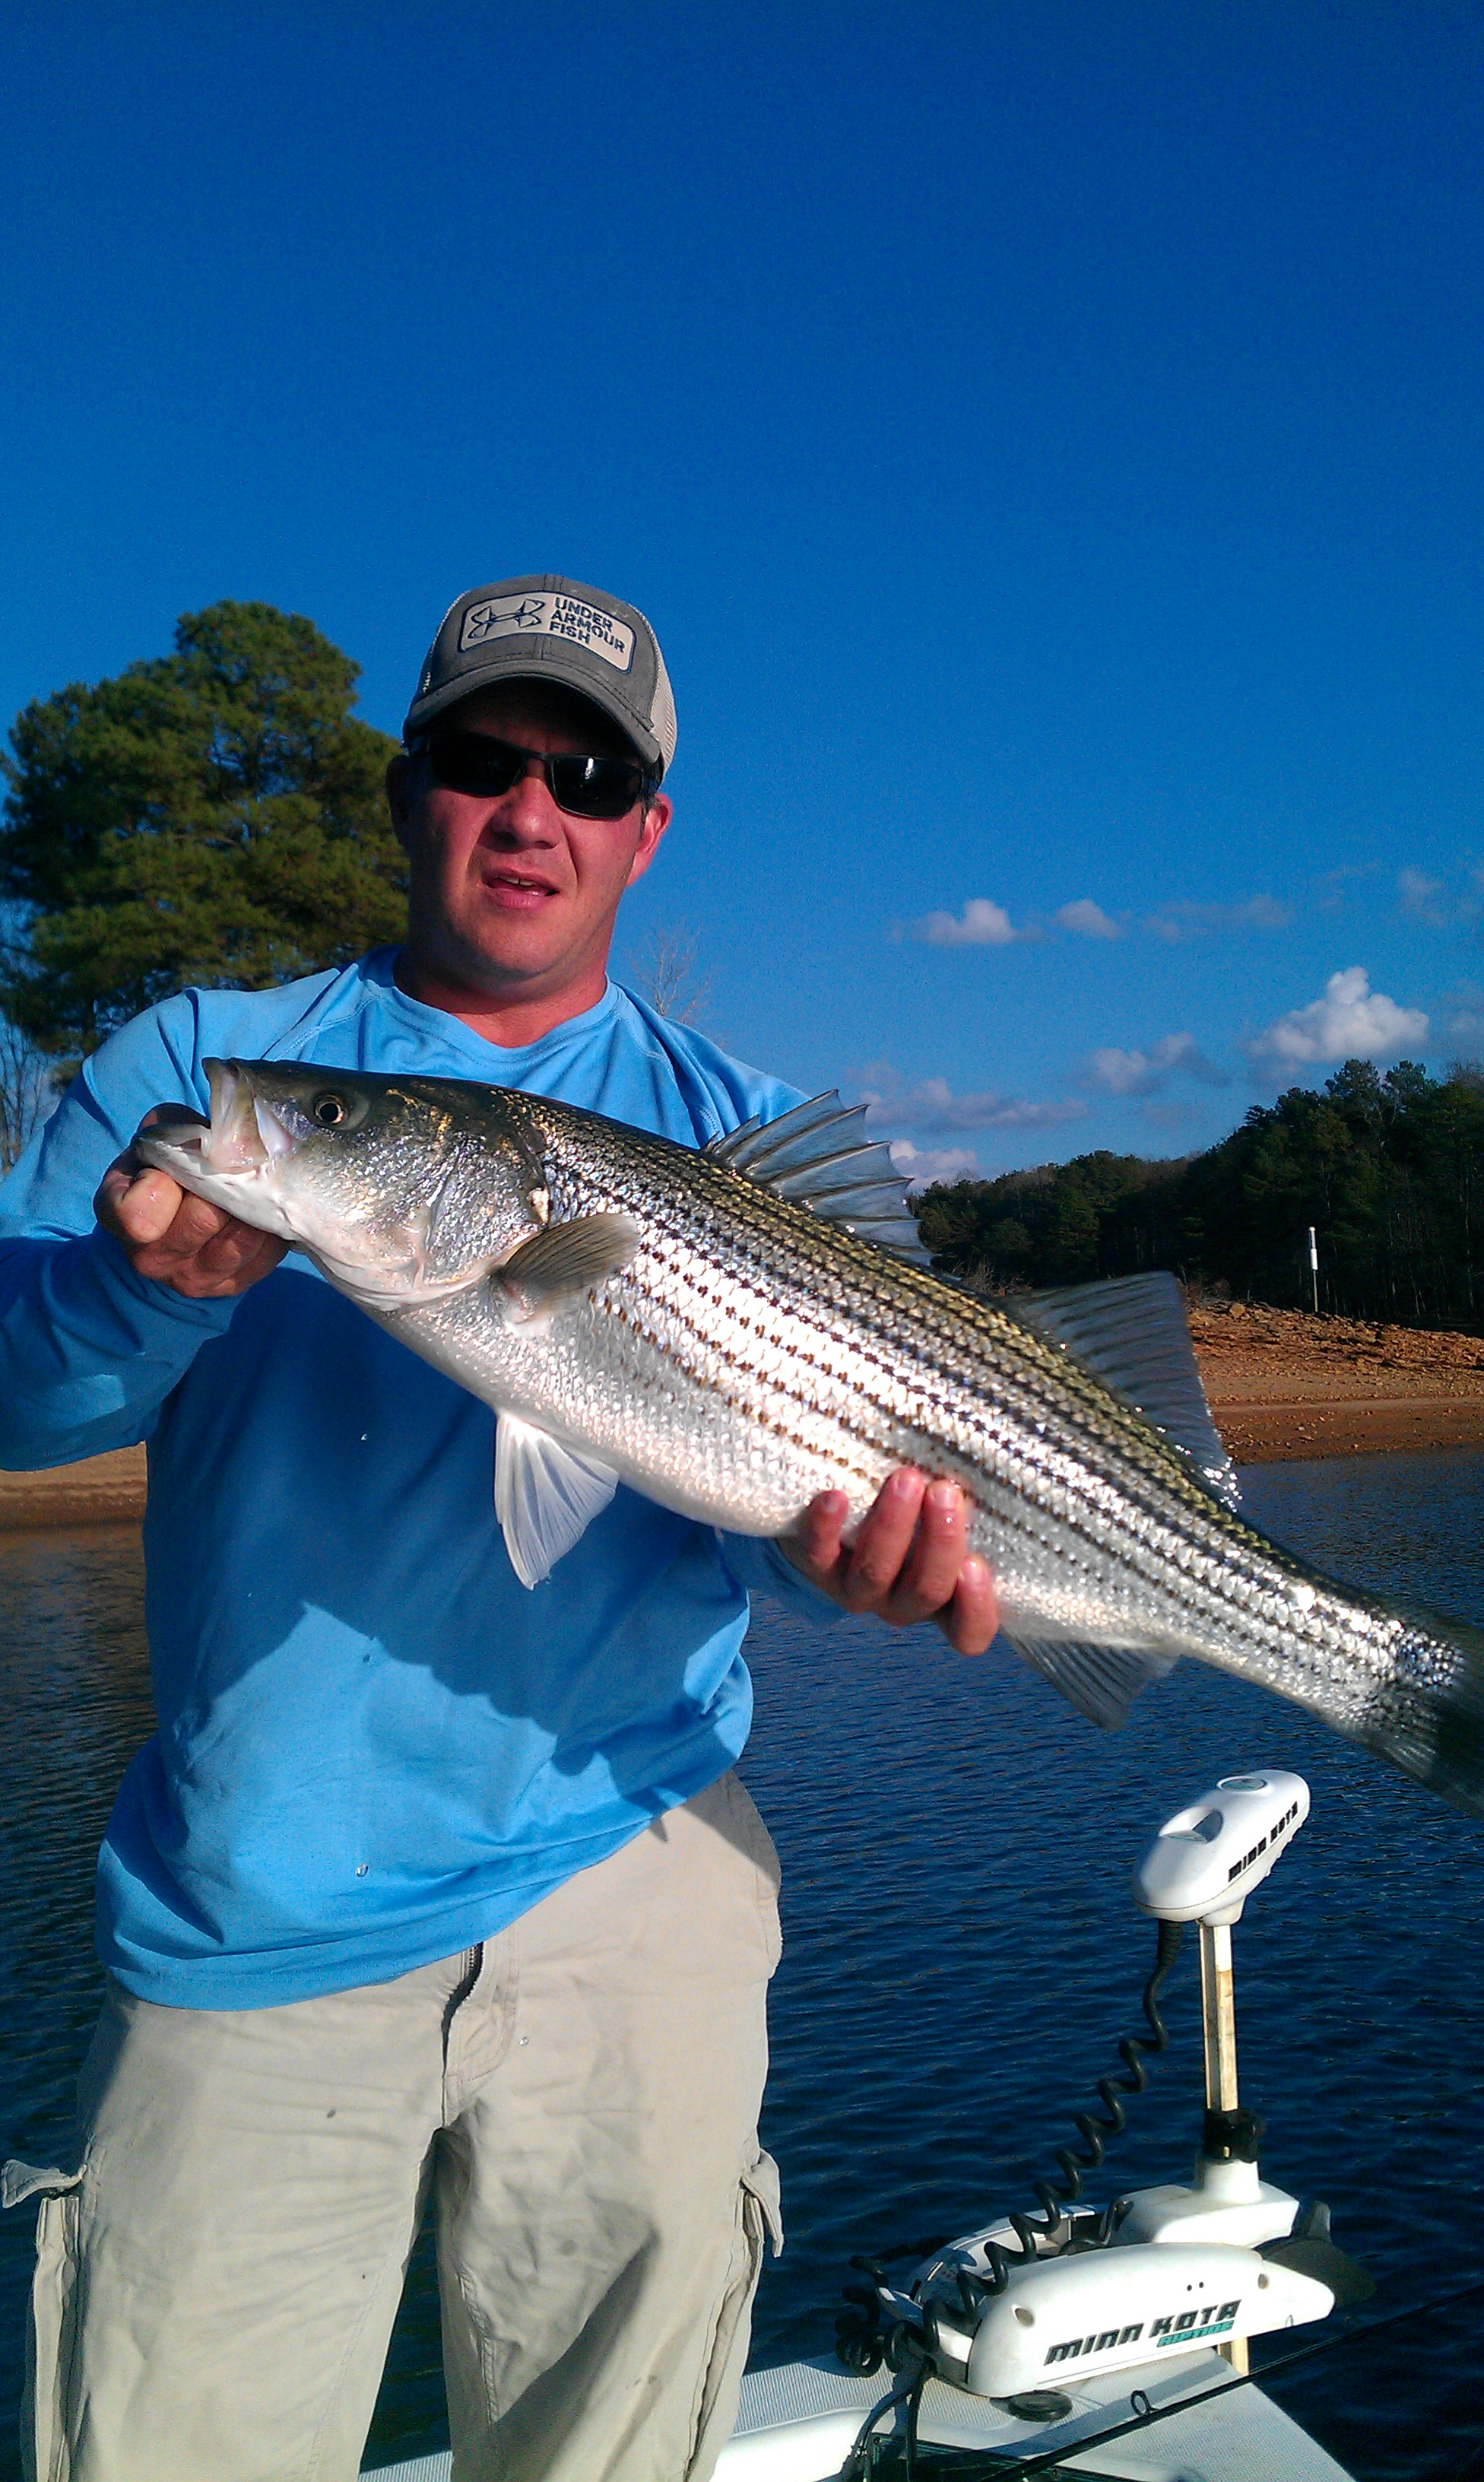 Lake lanier striper fishing dec 9 2012 striper steve 39 s for Lake lanier striper fishing